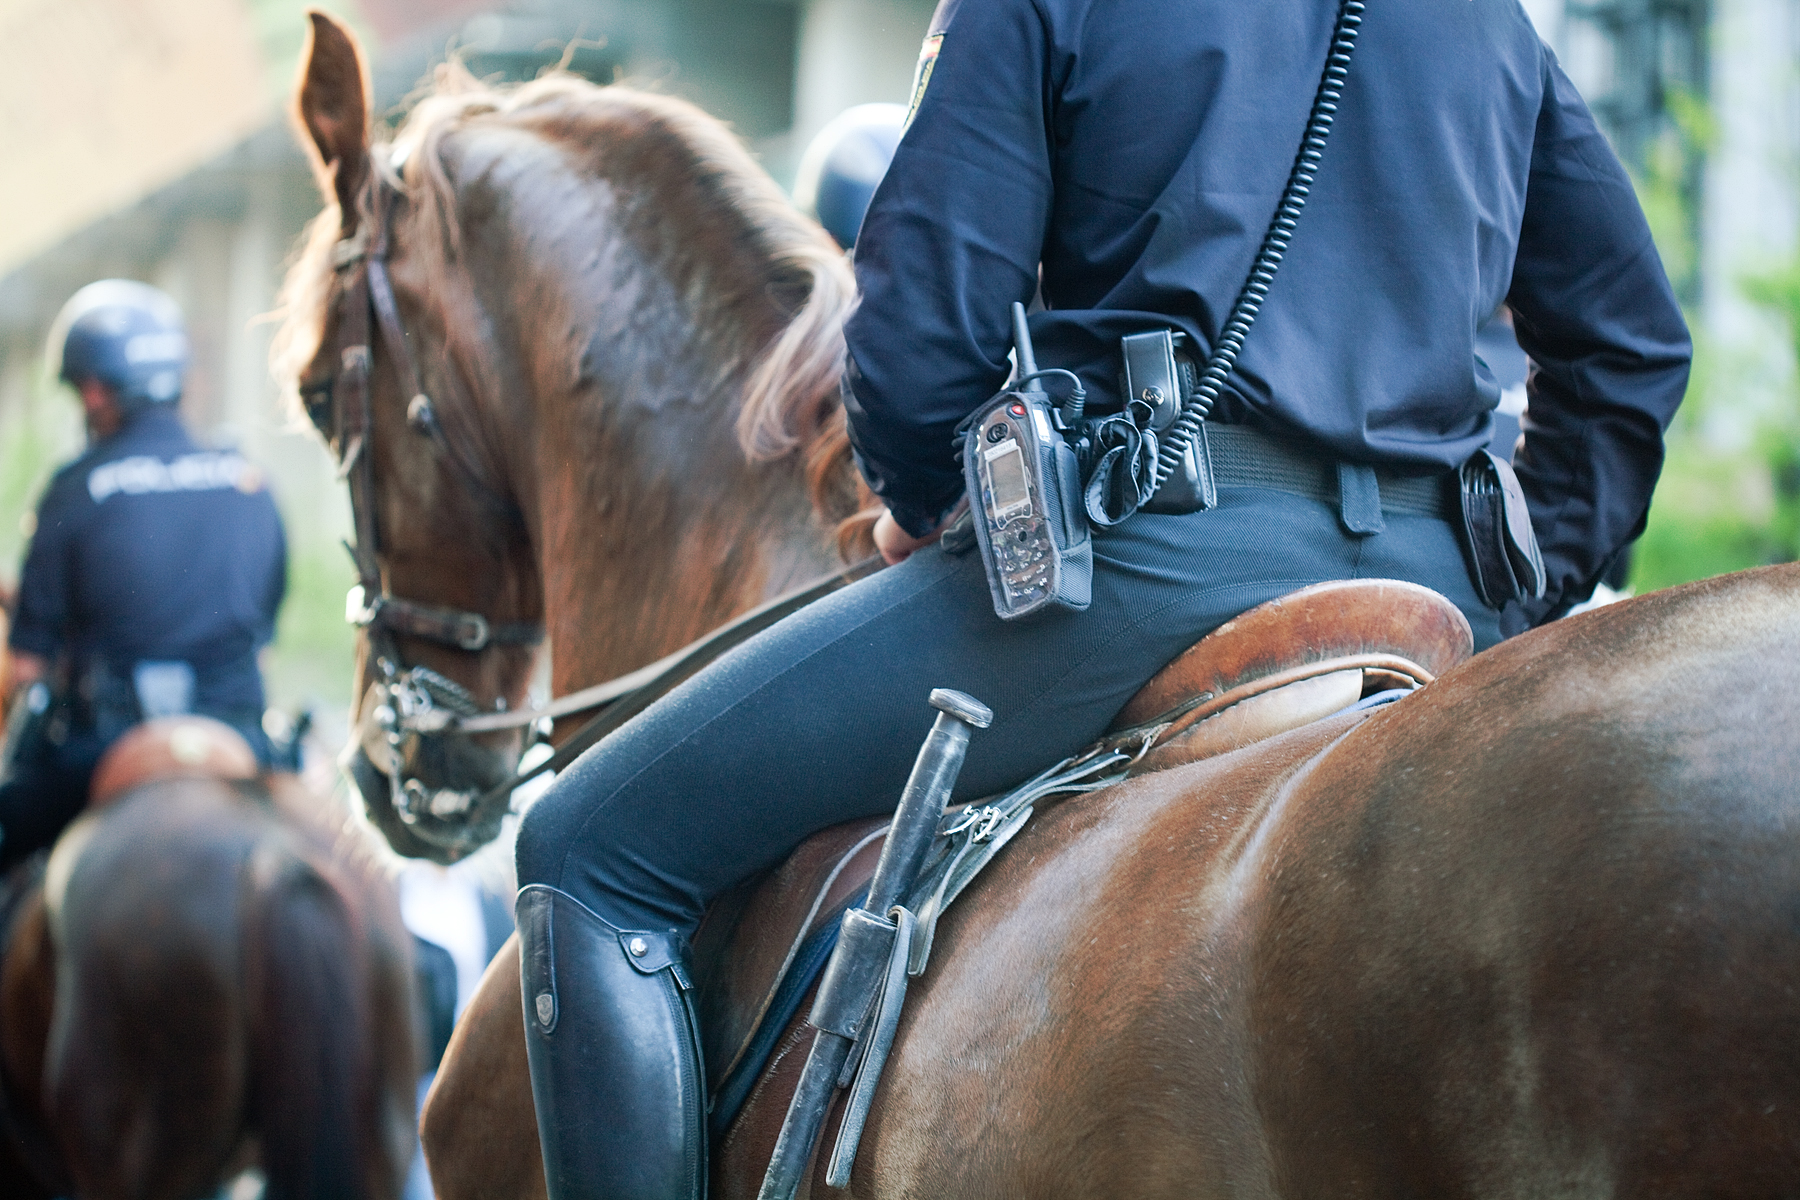 """""""This is 2019 and not 1819"""": mounted police leading a black man by a rope sparks outrage"""